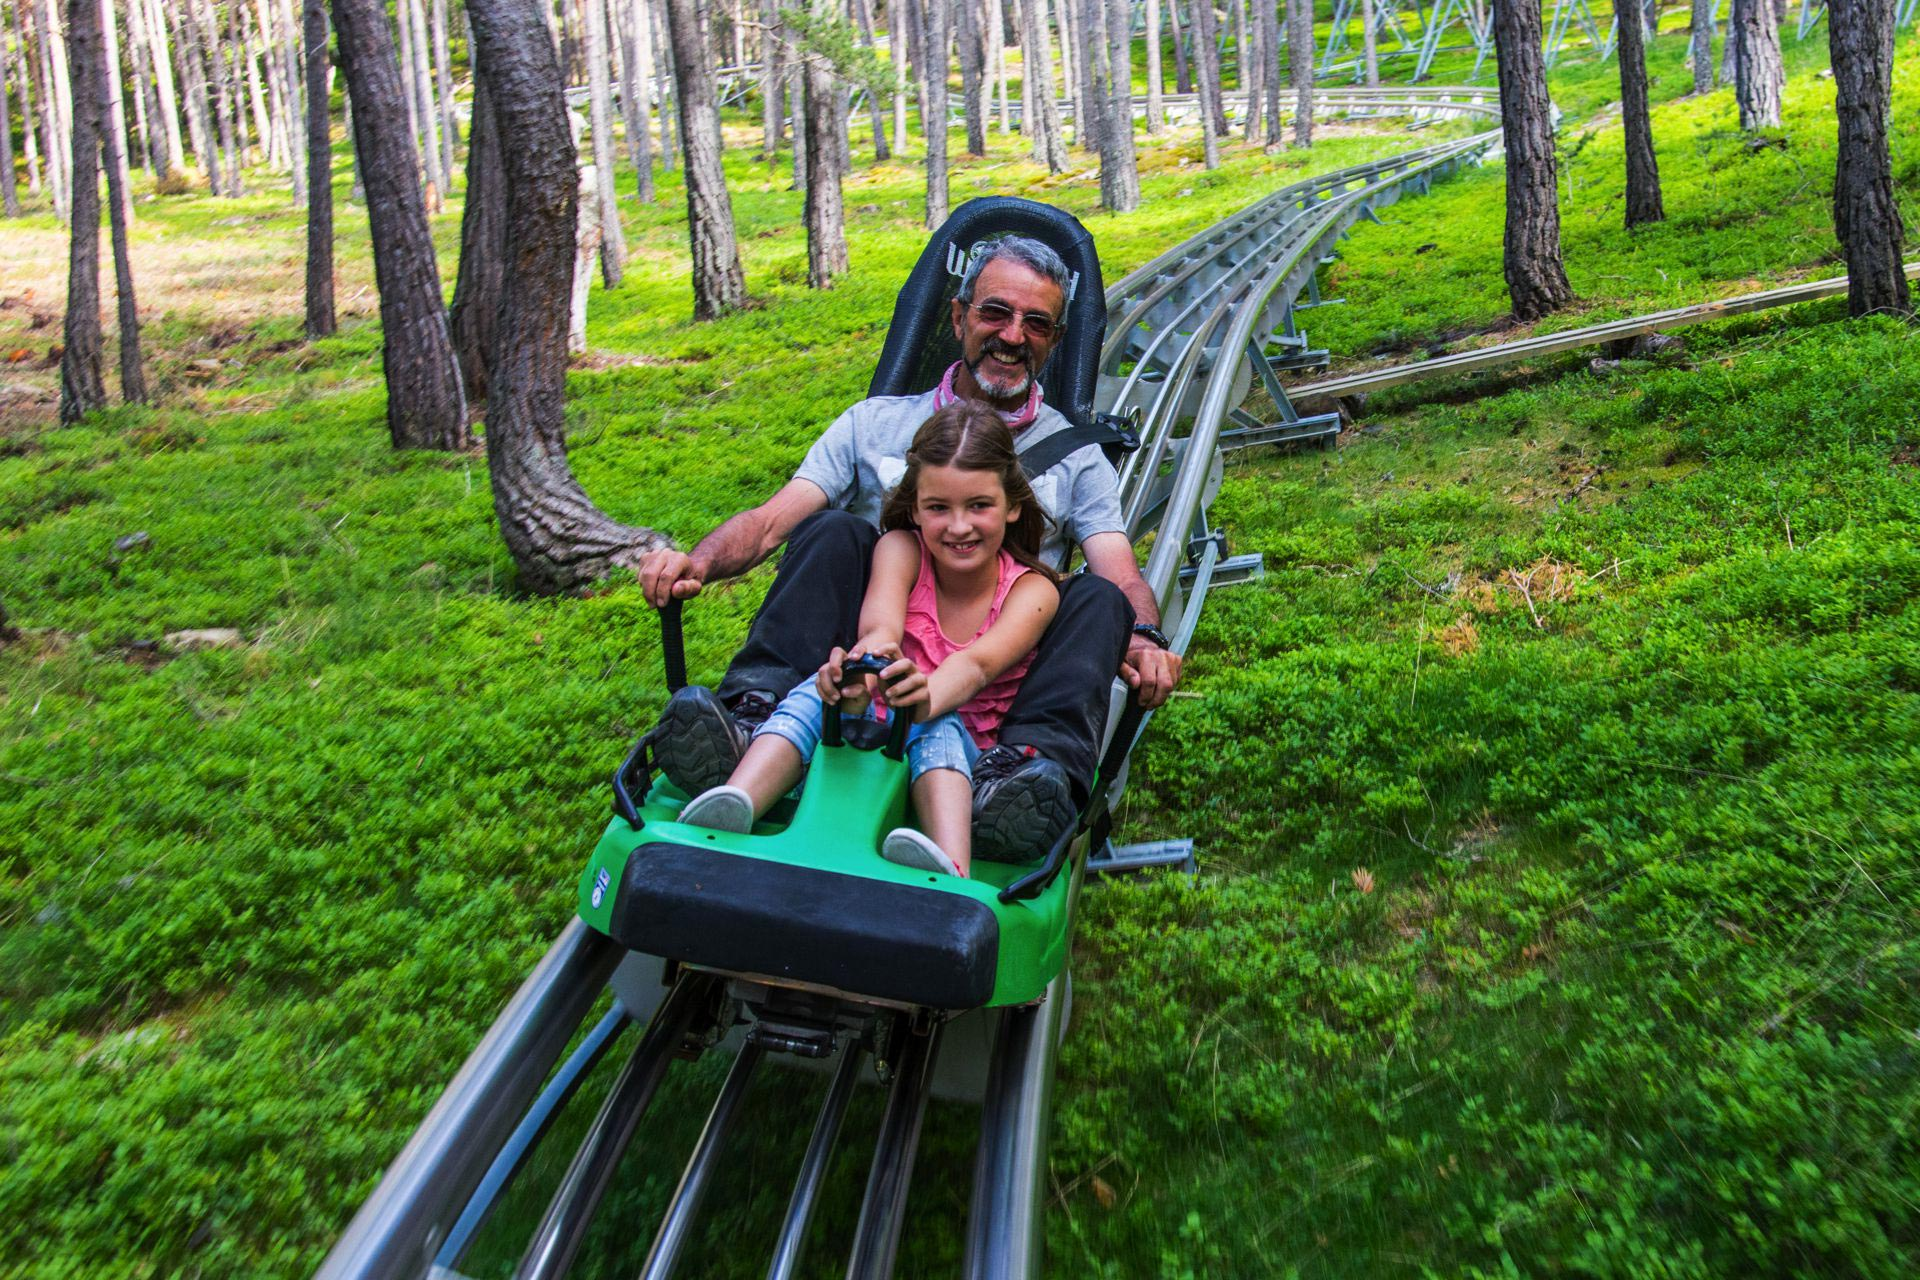 An adventure park in the Pyrenees for the whole family